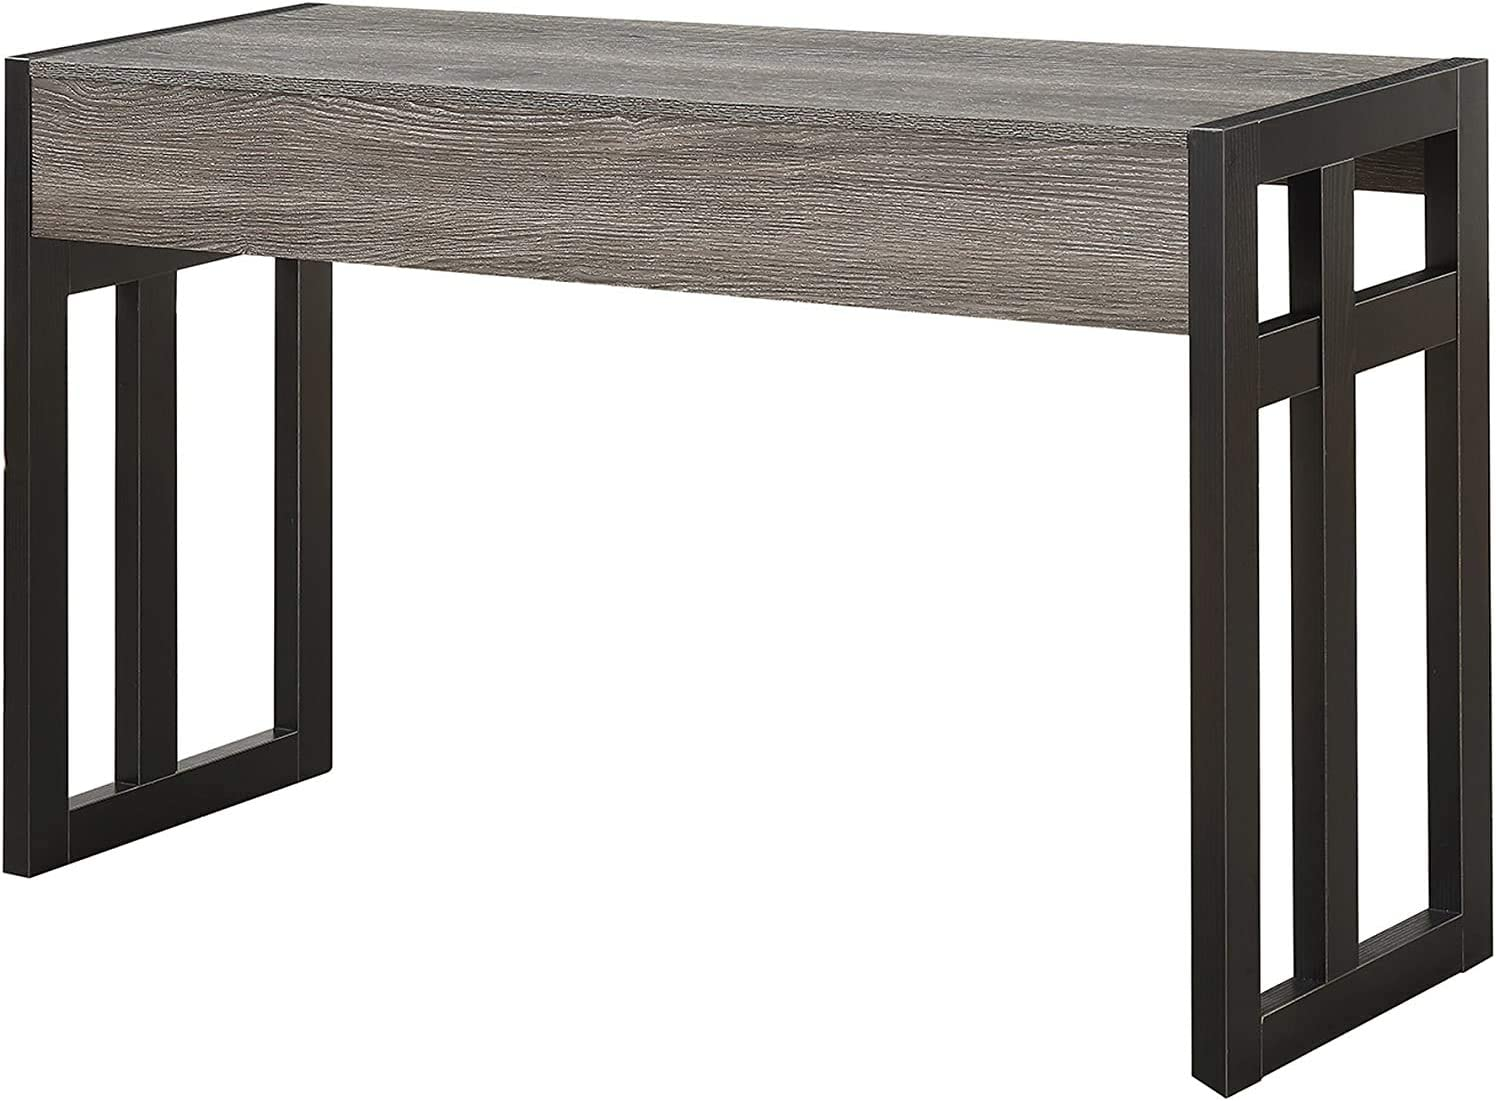 Convenience Concepts Monterey Console Table, Weathered Gray / Black Frame